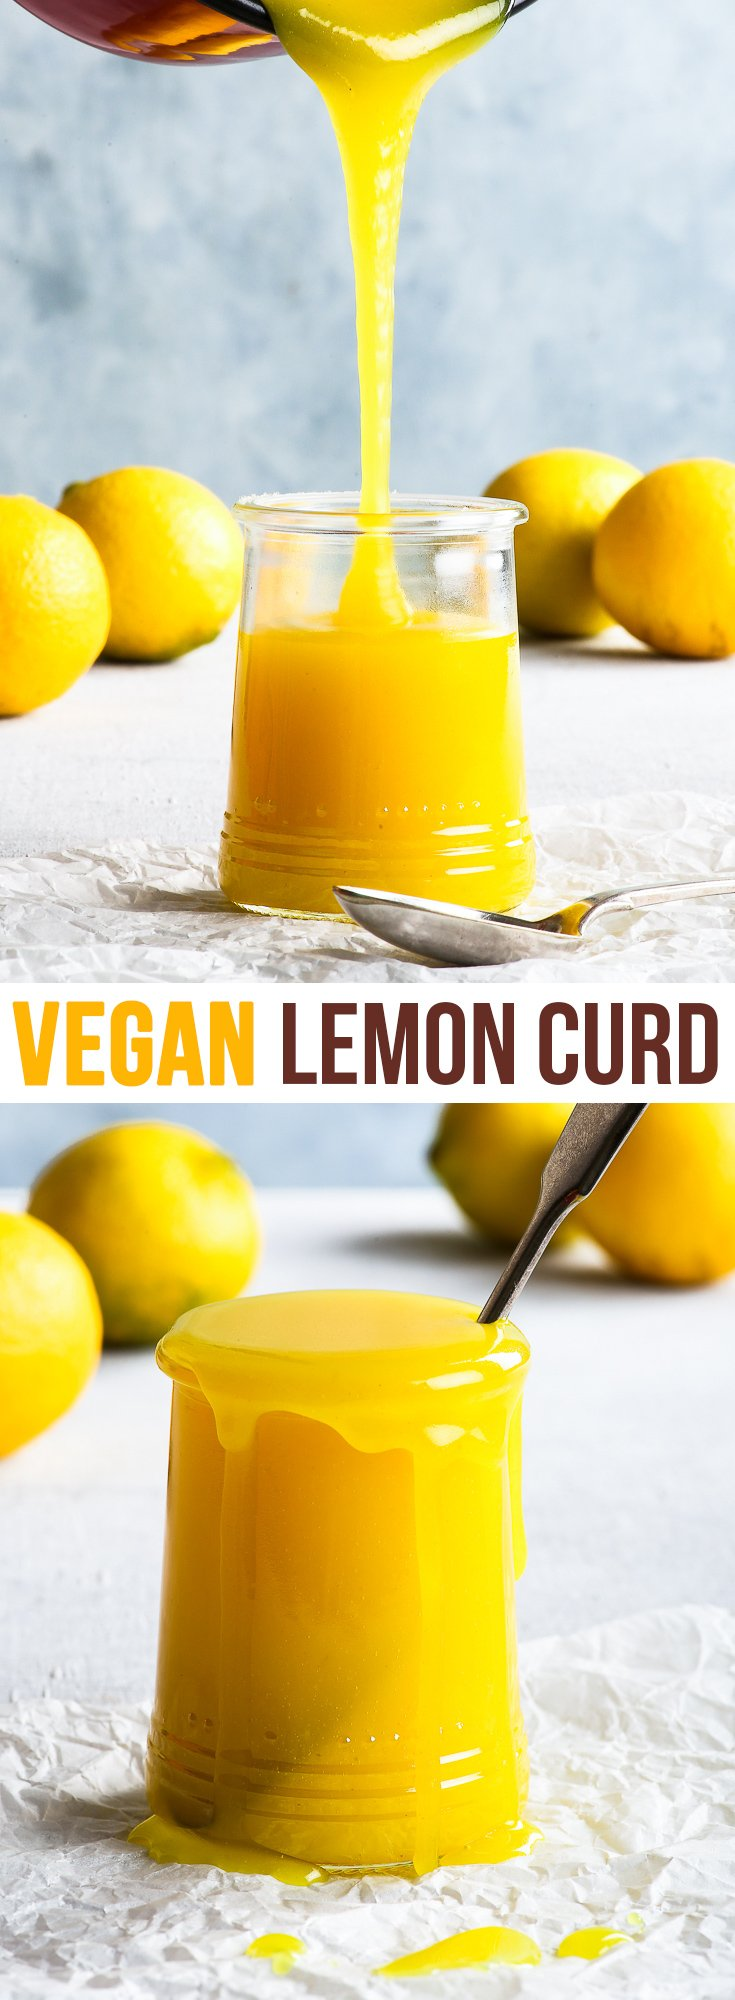 Vegan Lemon Curd {gluten, dairy, egg, nut & soy free, vegan} - This vegan lemon curd is the real deal. Lemony, luscious, and with a perfect balance between tart and sweet, it also has that perfect lemon curd consistency. And, perhaps most importantly, it has that beautiful golden yellow colour of a proper lemon curd. The best egg free lemon curd you've ever had! #vegan #glutenfree #lemon #lemoncurd #dessert #recipe